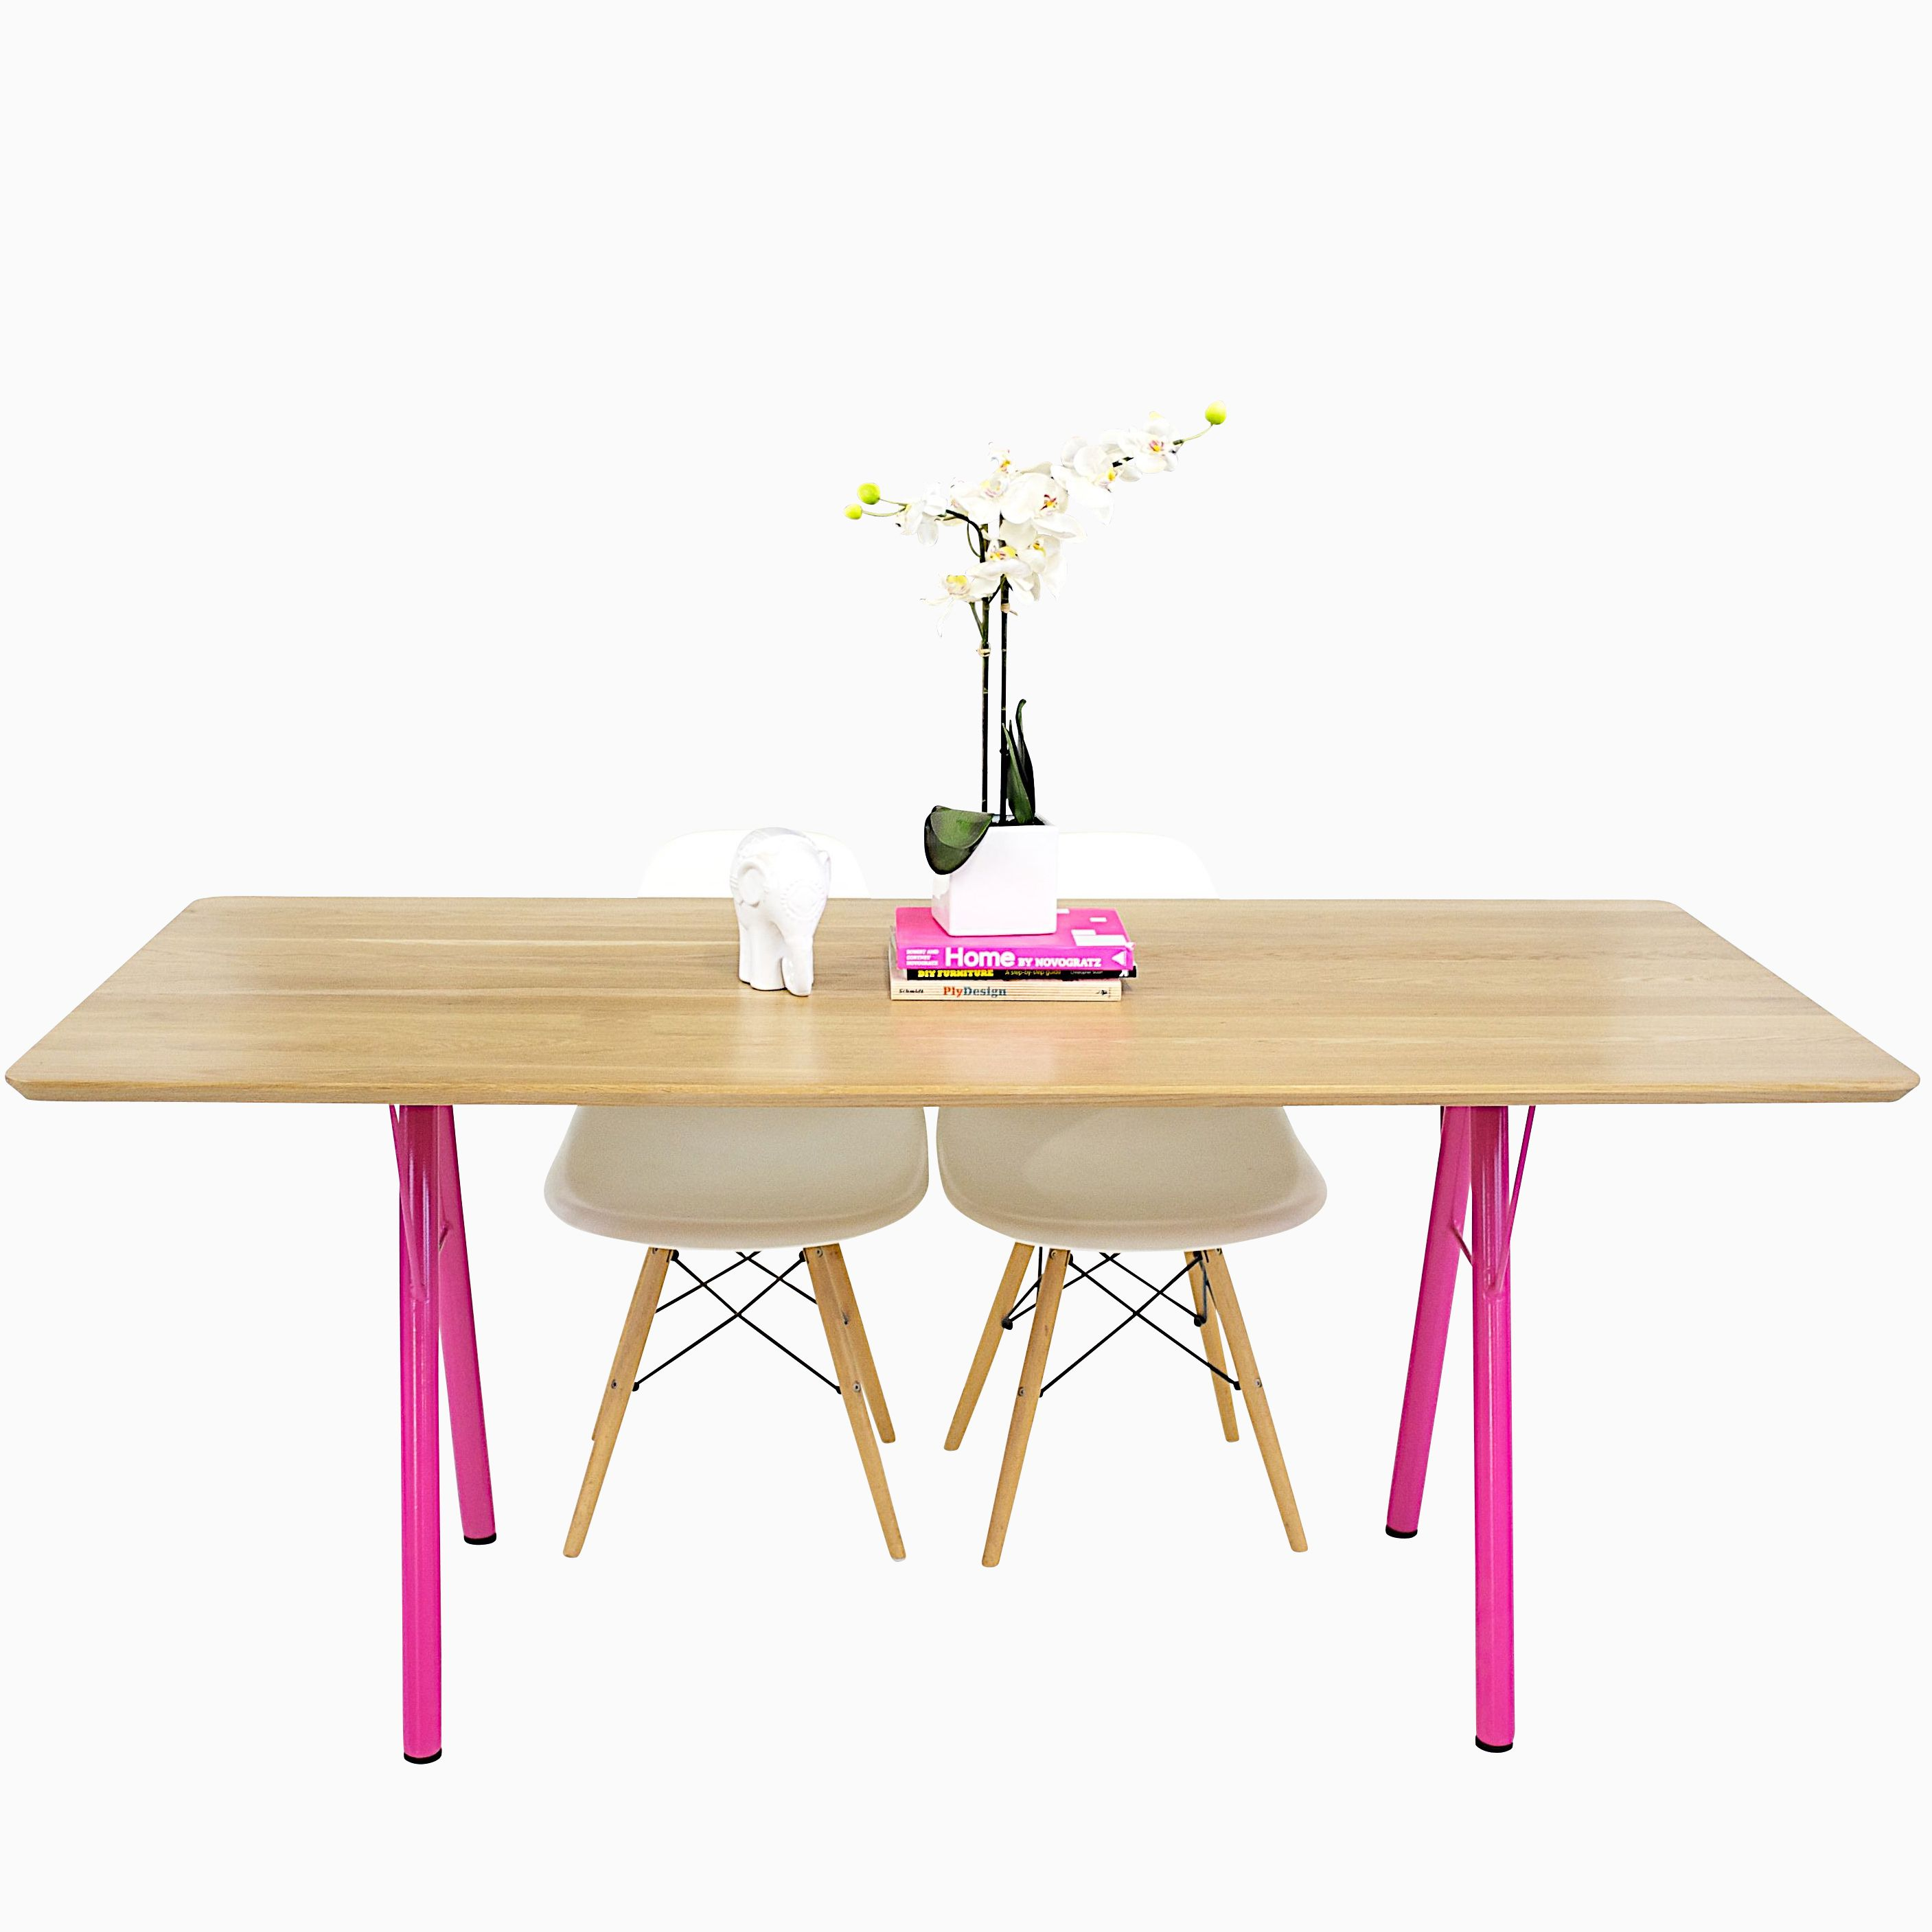 Teak Wood Dining Table White Powder Coated Legs White: Buy A Hand Made Mid Century Modern White Oak Table With